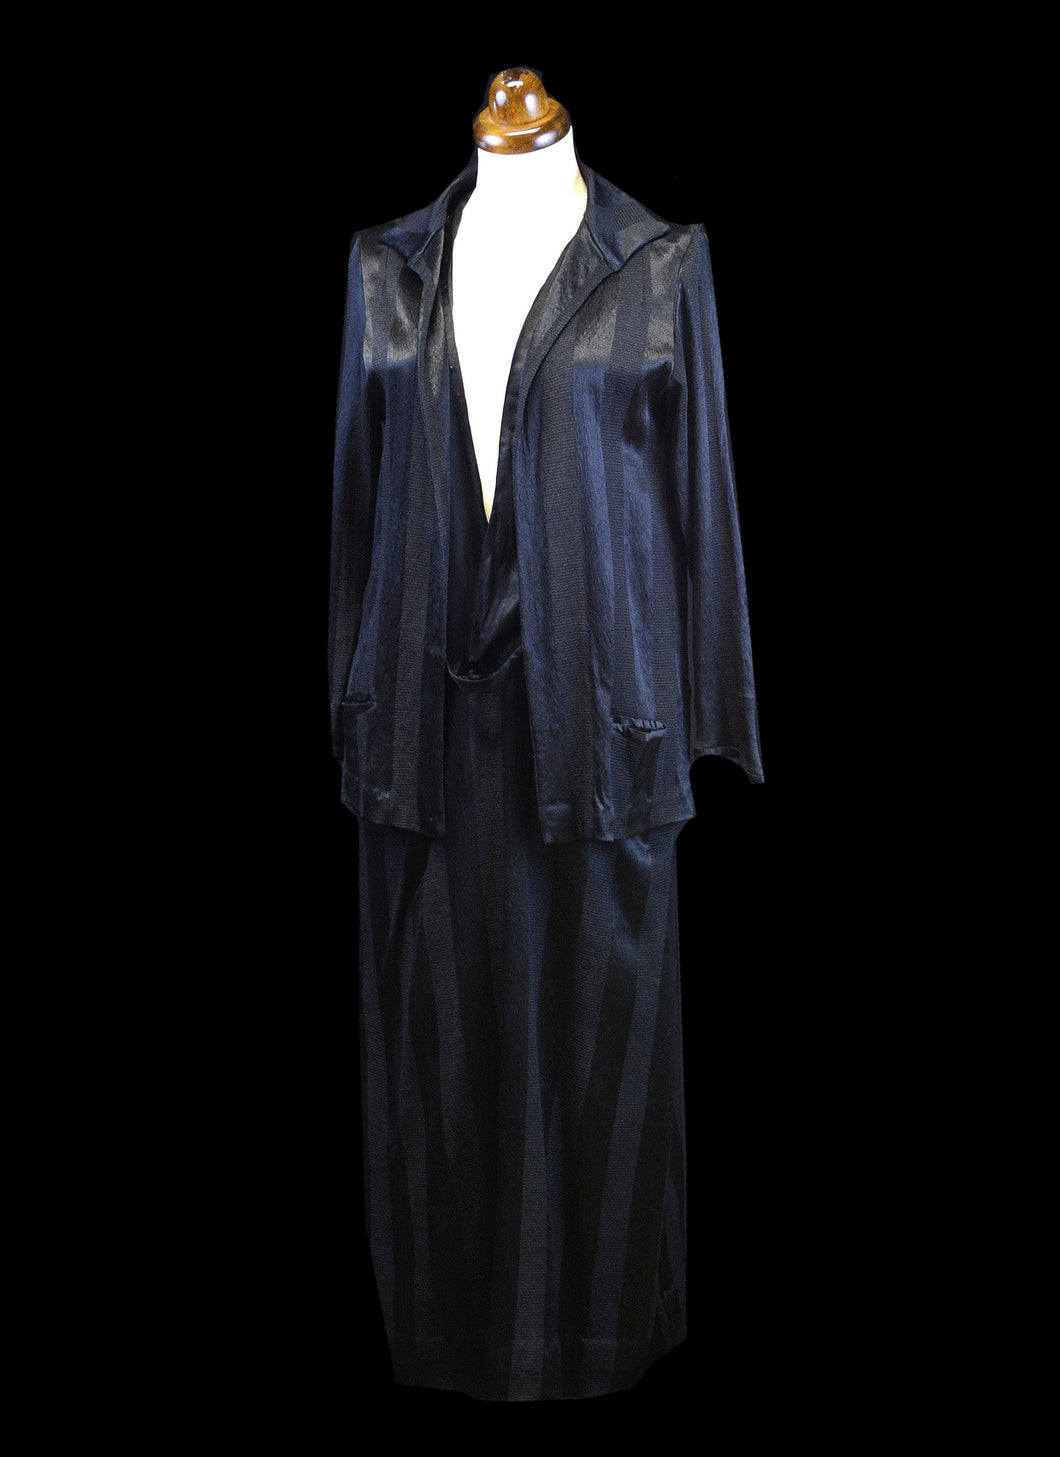 Vintage 1920s Black Crepe Satin Dress